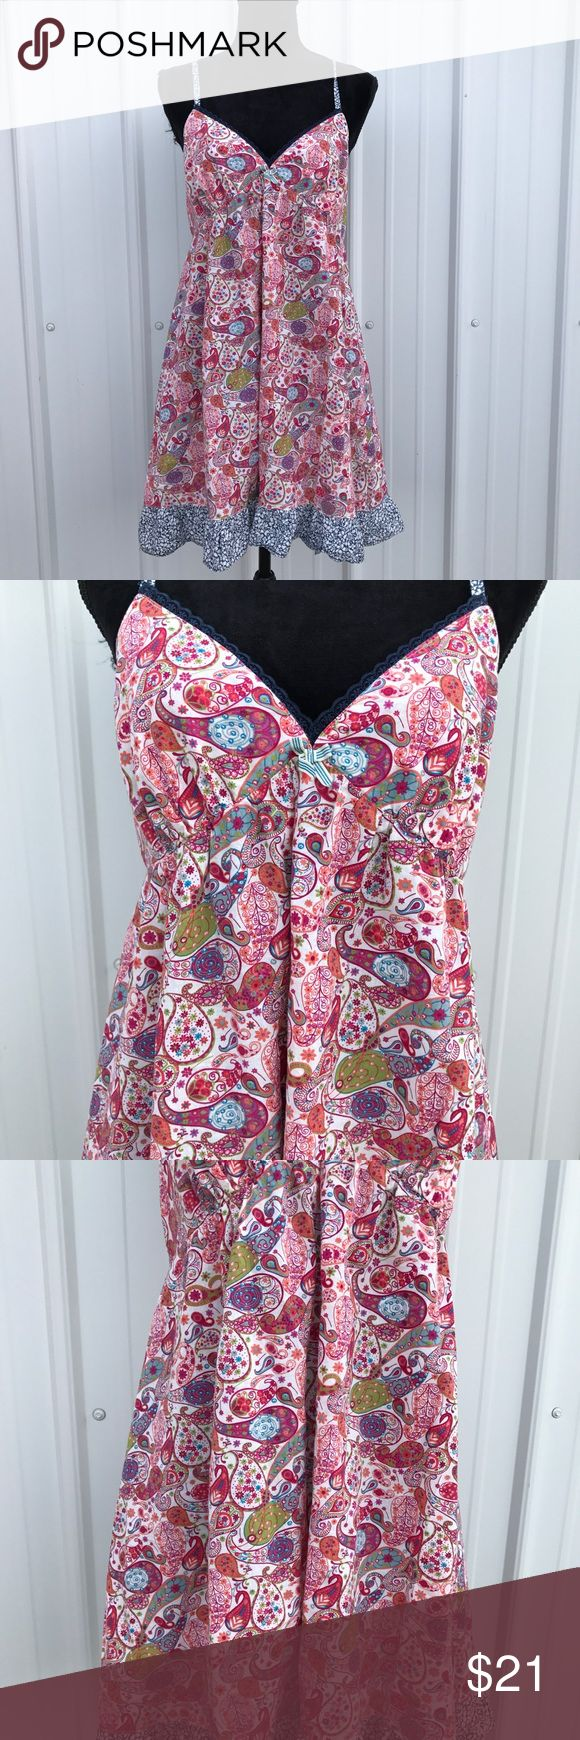 "Liberty Of London For Target Baby Doll Dress Multi colors paisley print. Adjustable spaghetti straps. Elastic waistband and criss cross in the back. 17"" chest. 25"" armpit to hemline. Above knee length. Liberty Of London For Target Dresses Mini"